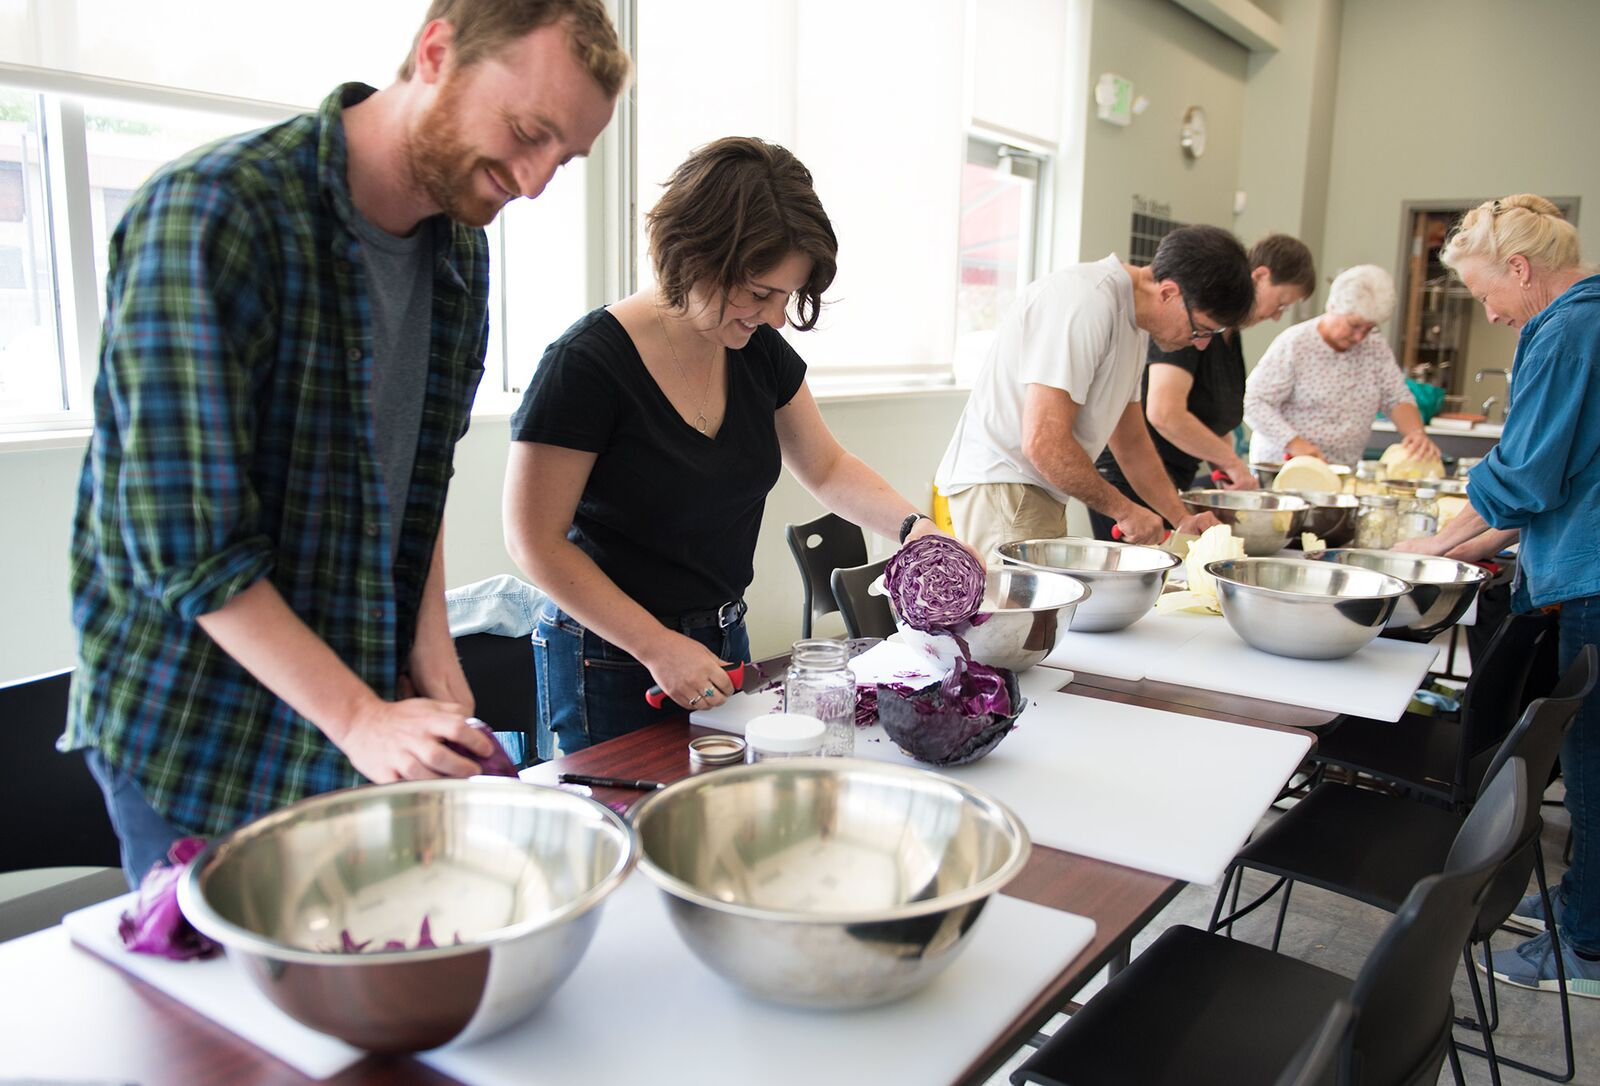 Workshop participants chop cabbage during a vegetable fermentation workshop at Honest Weight Food Cooperative in Albany, New York.